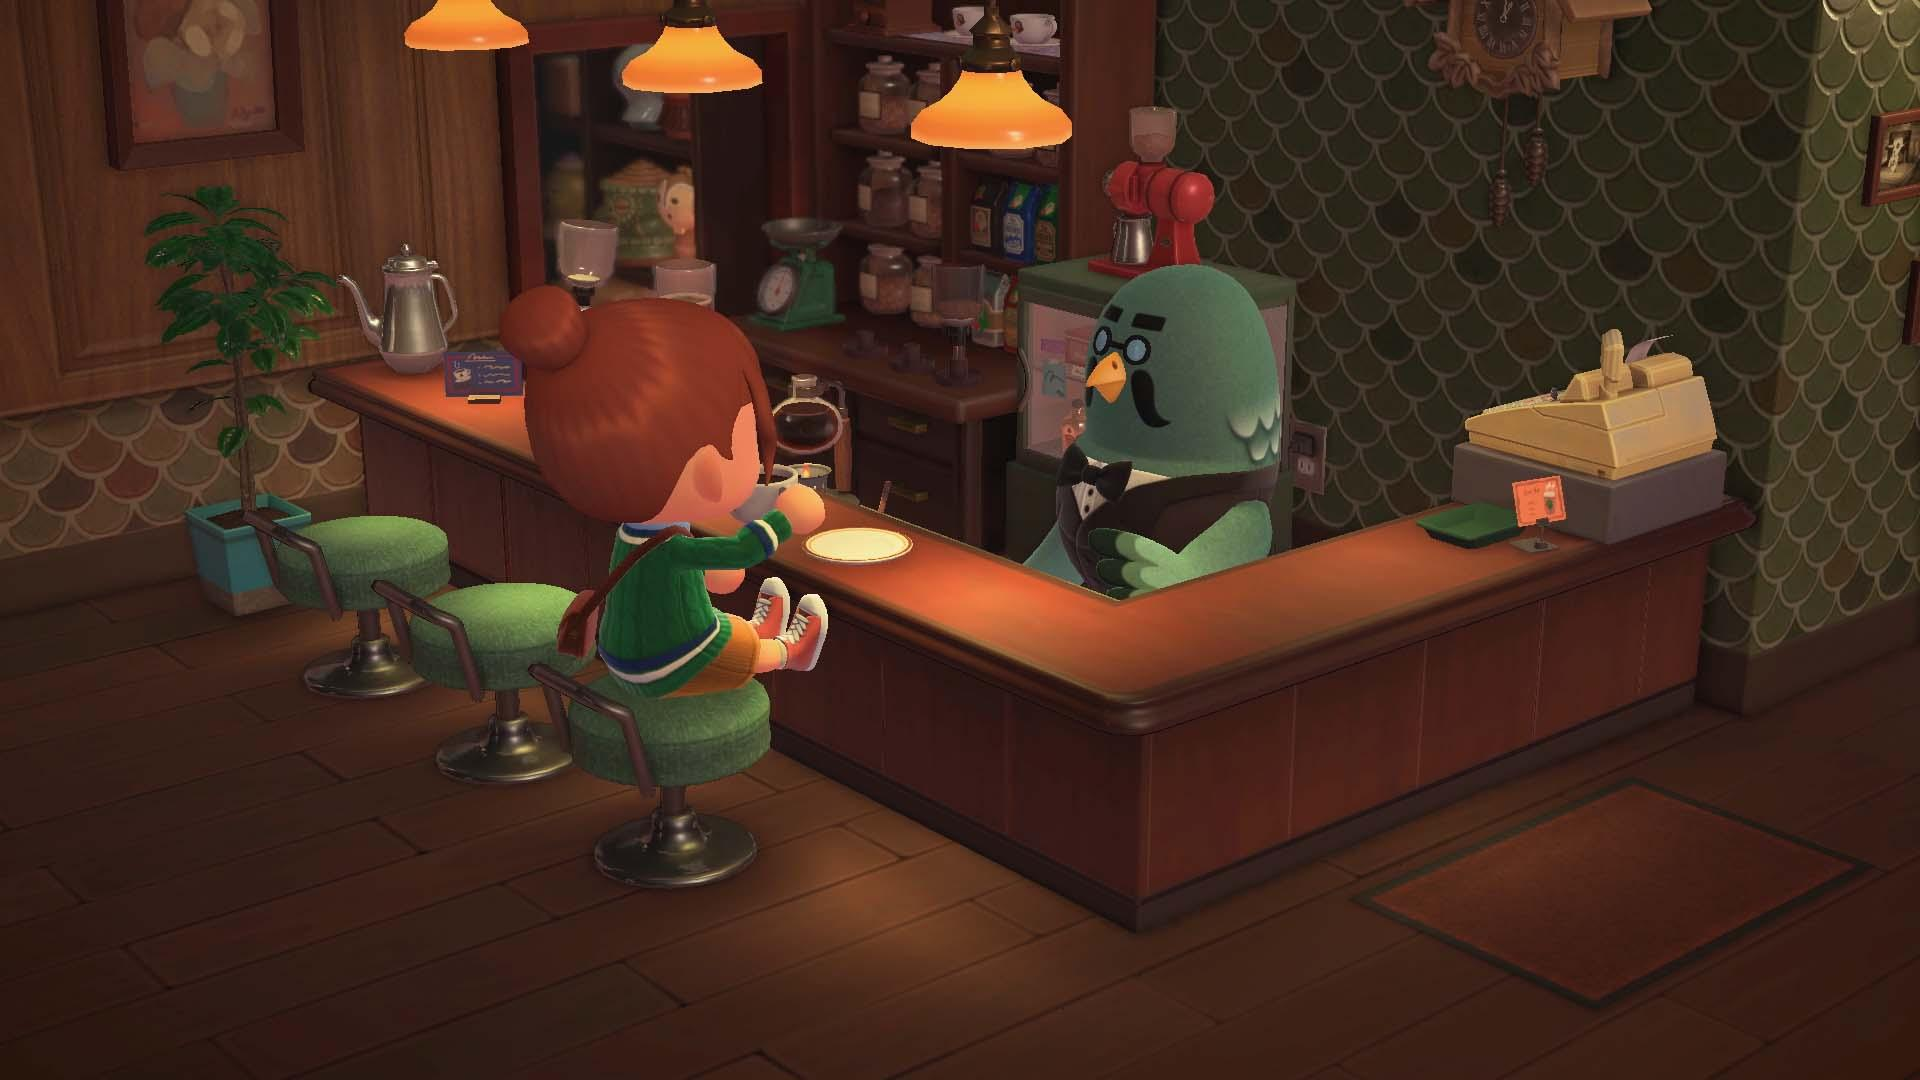 Brewster in 'Animal Crossing: New Horizons'